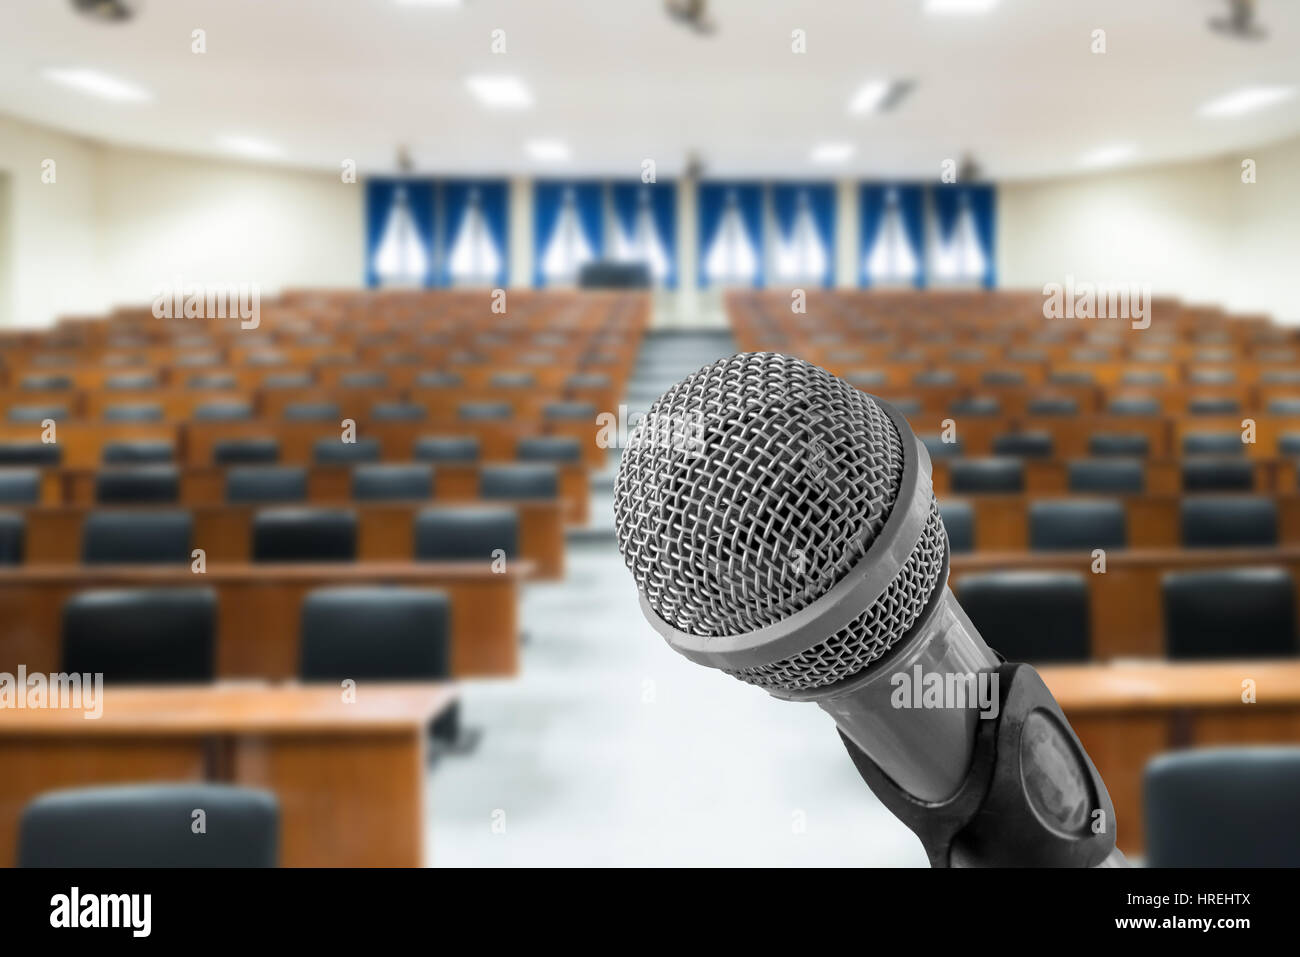 Microphone with blurred photo of empty conference hall or seminar room in background. Business meeting concept - Stock Image